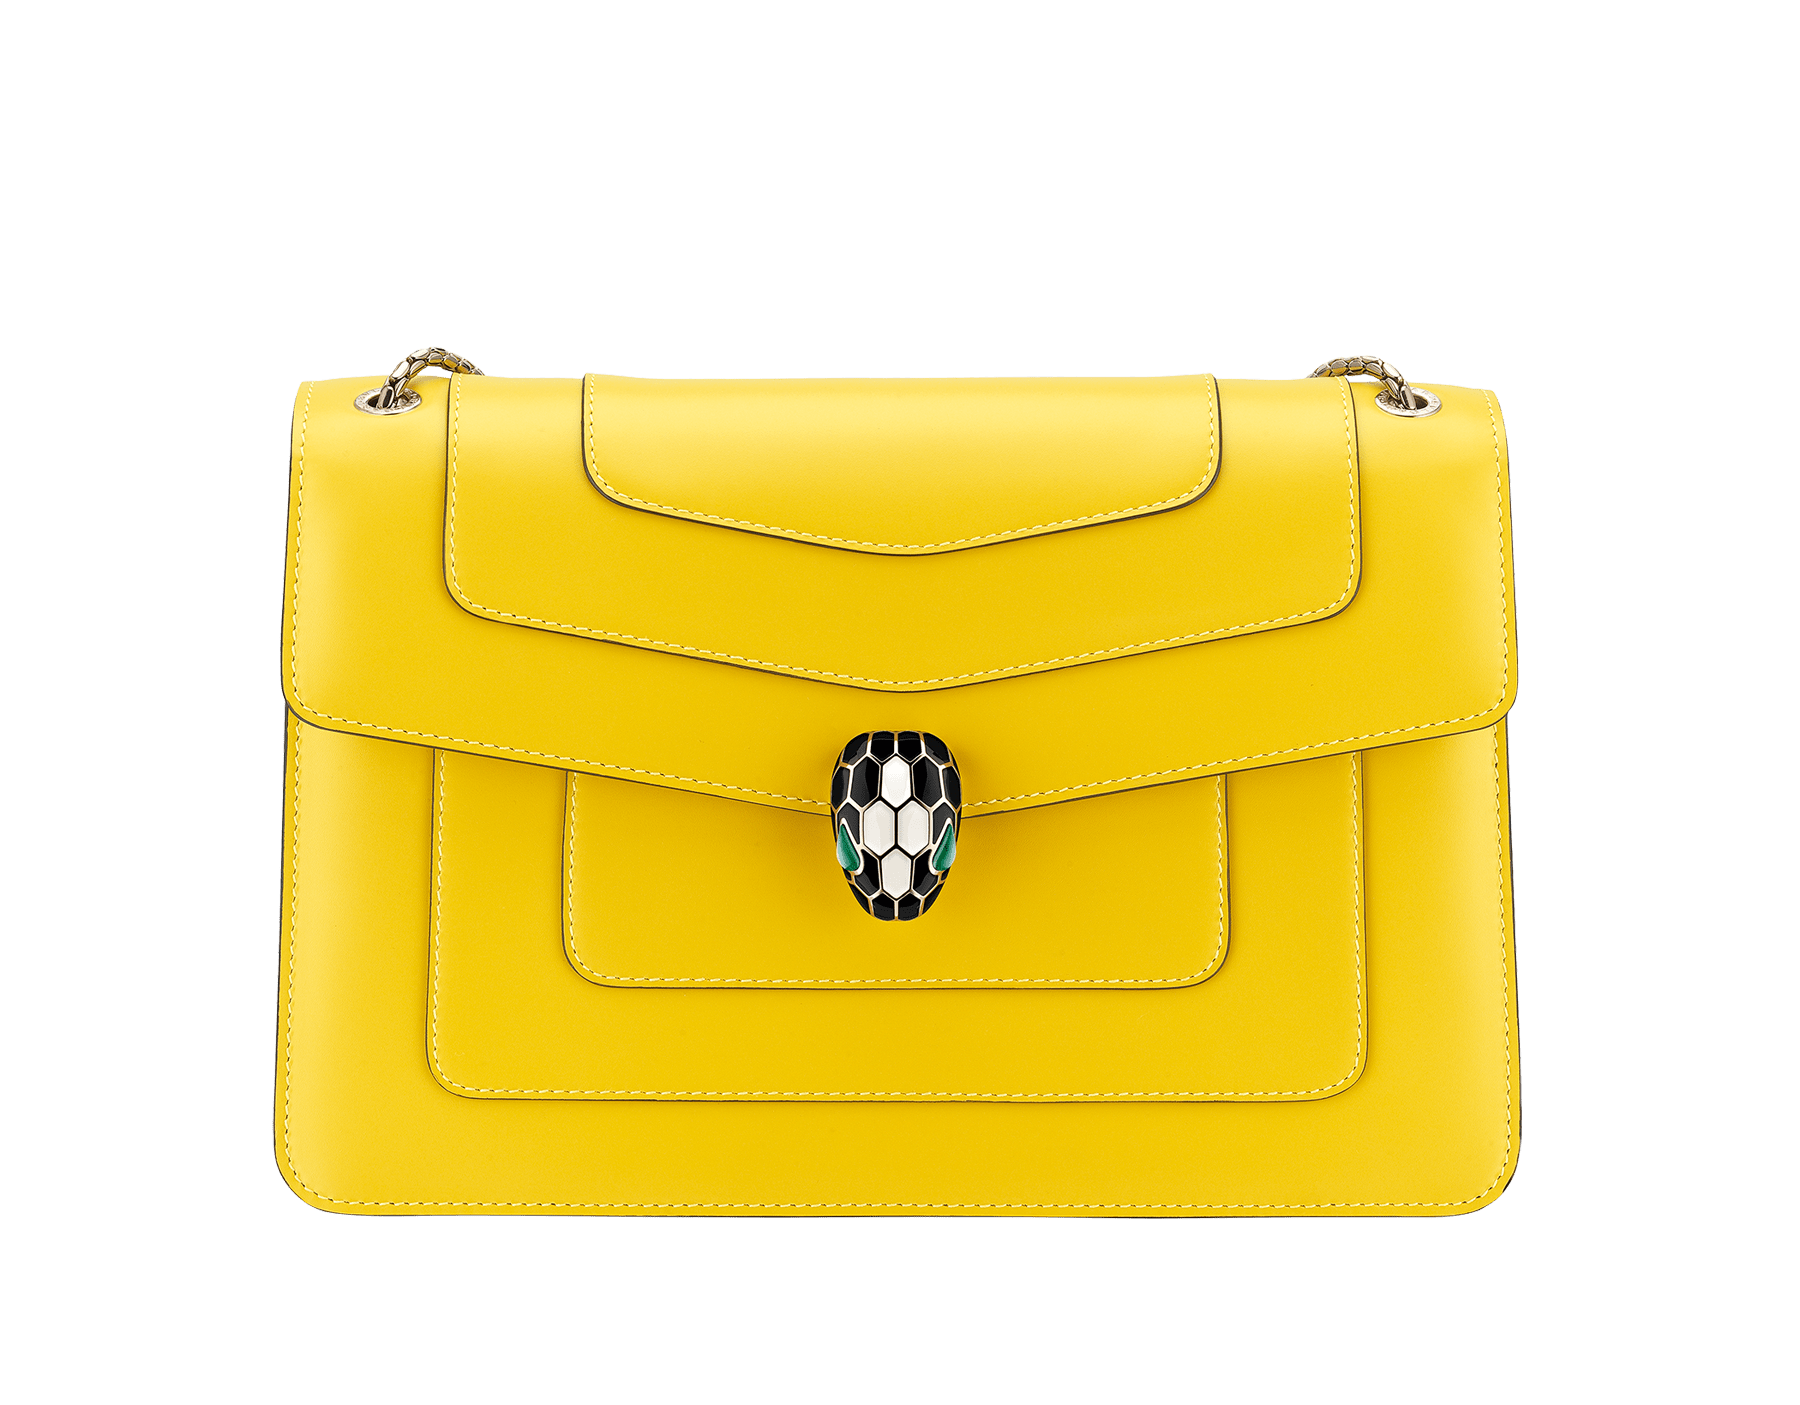 """Serpenti Forever"" shoulder bag in daisy topaz calf leather. Iconic snake head closure in light gold-plated brass enriched with black and white enamel and green malachite eyes. 290191 image 1"